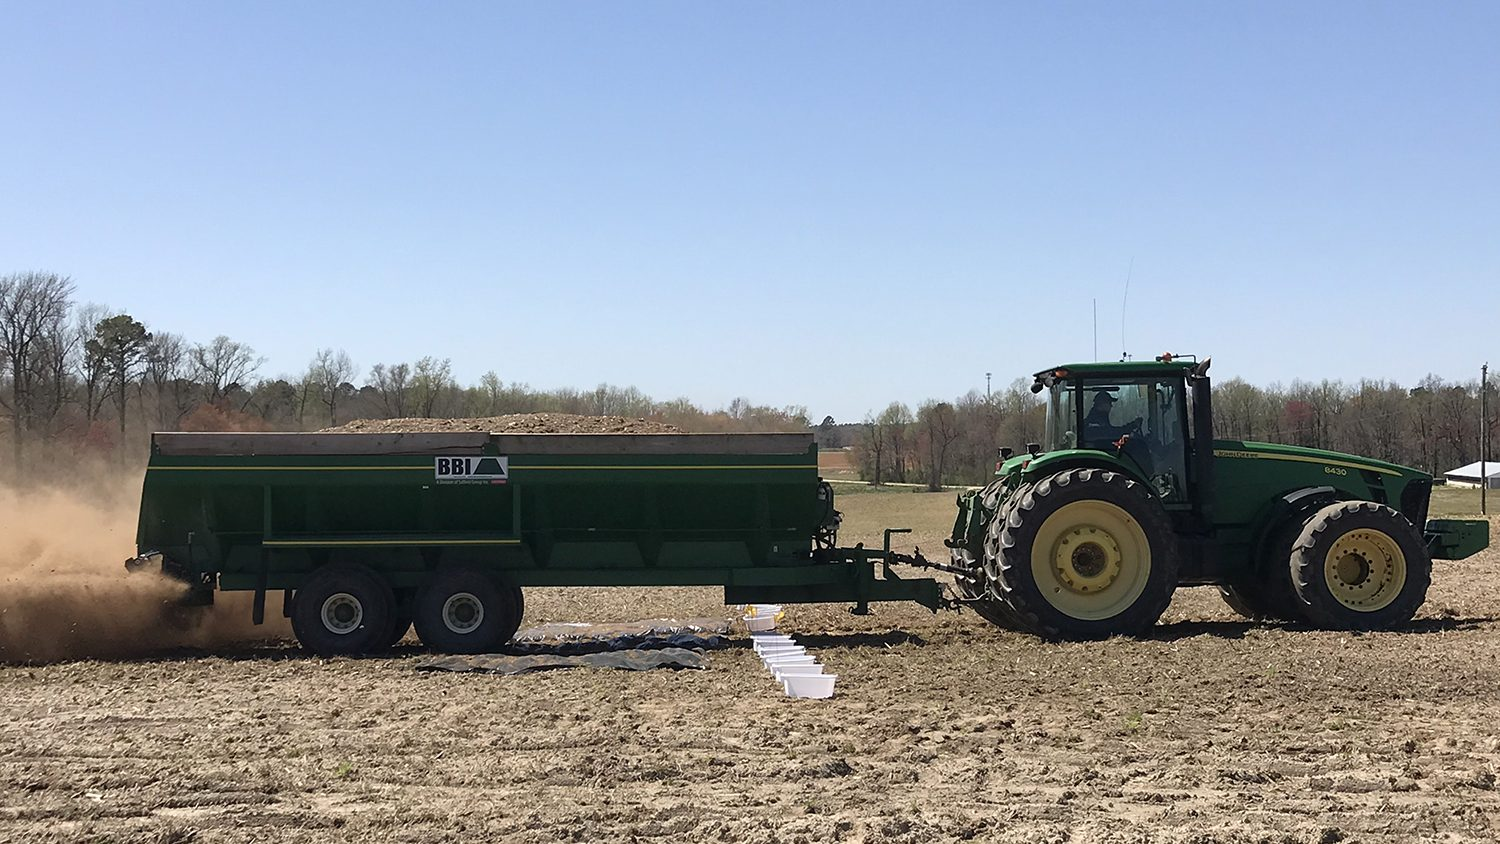 John Deere tracker pulling a litter spreader across a field